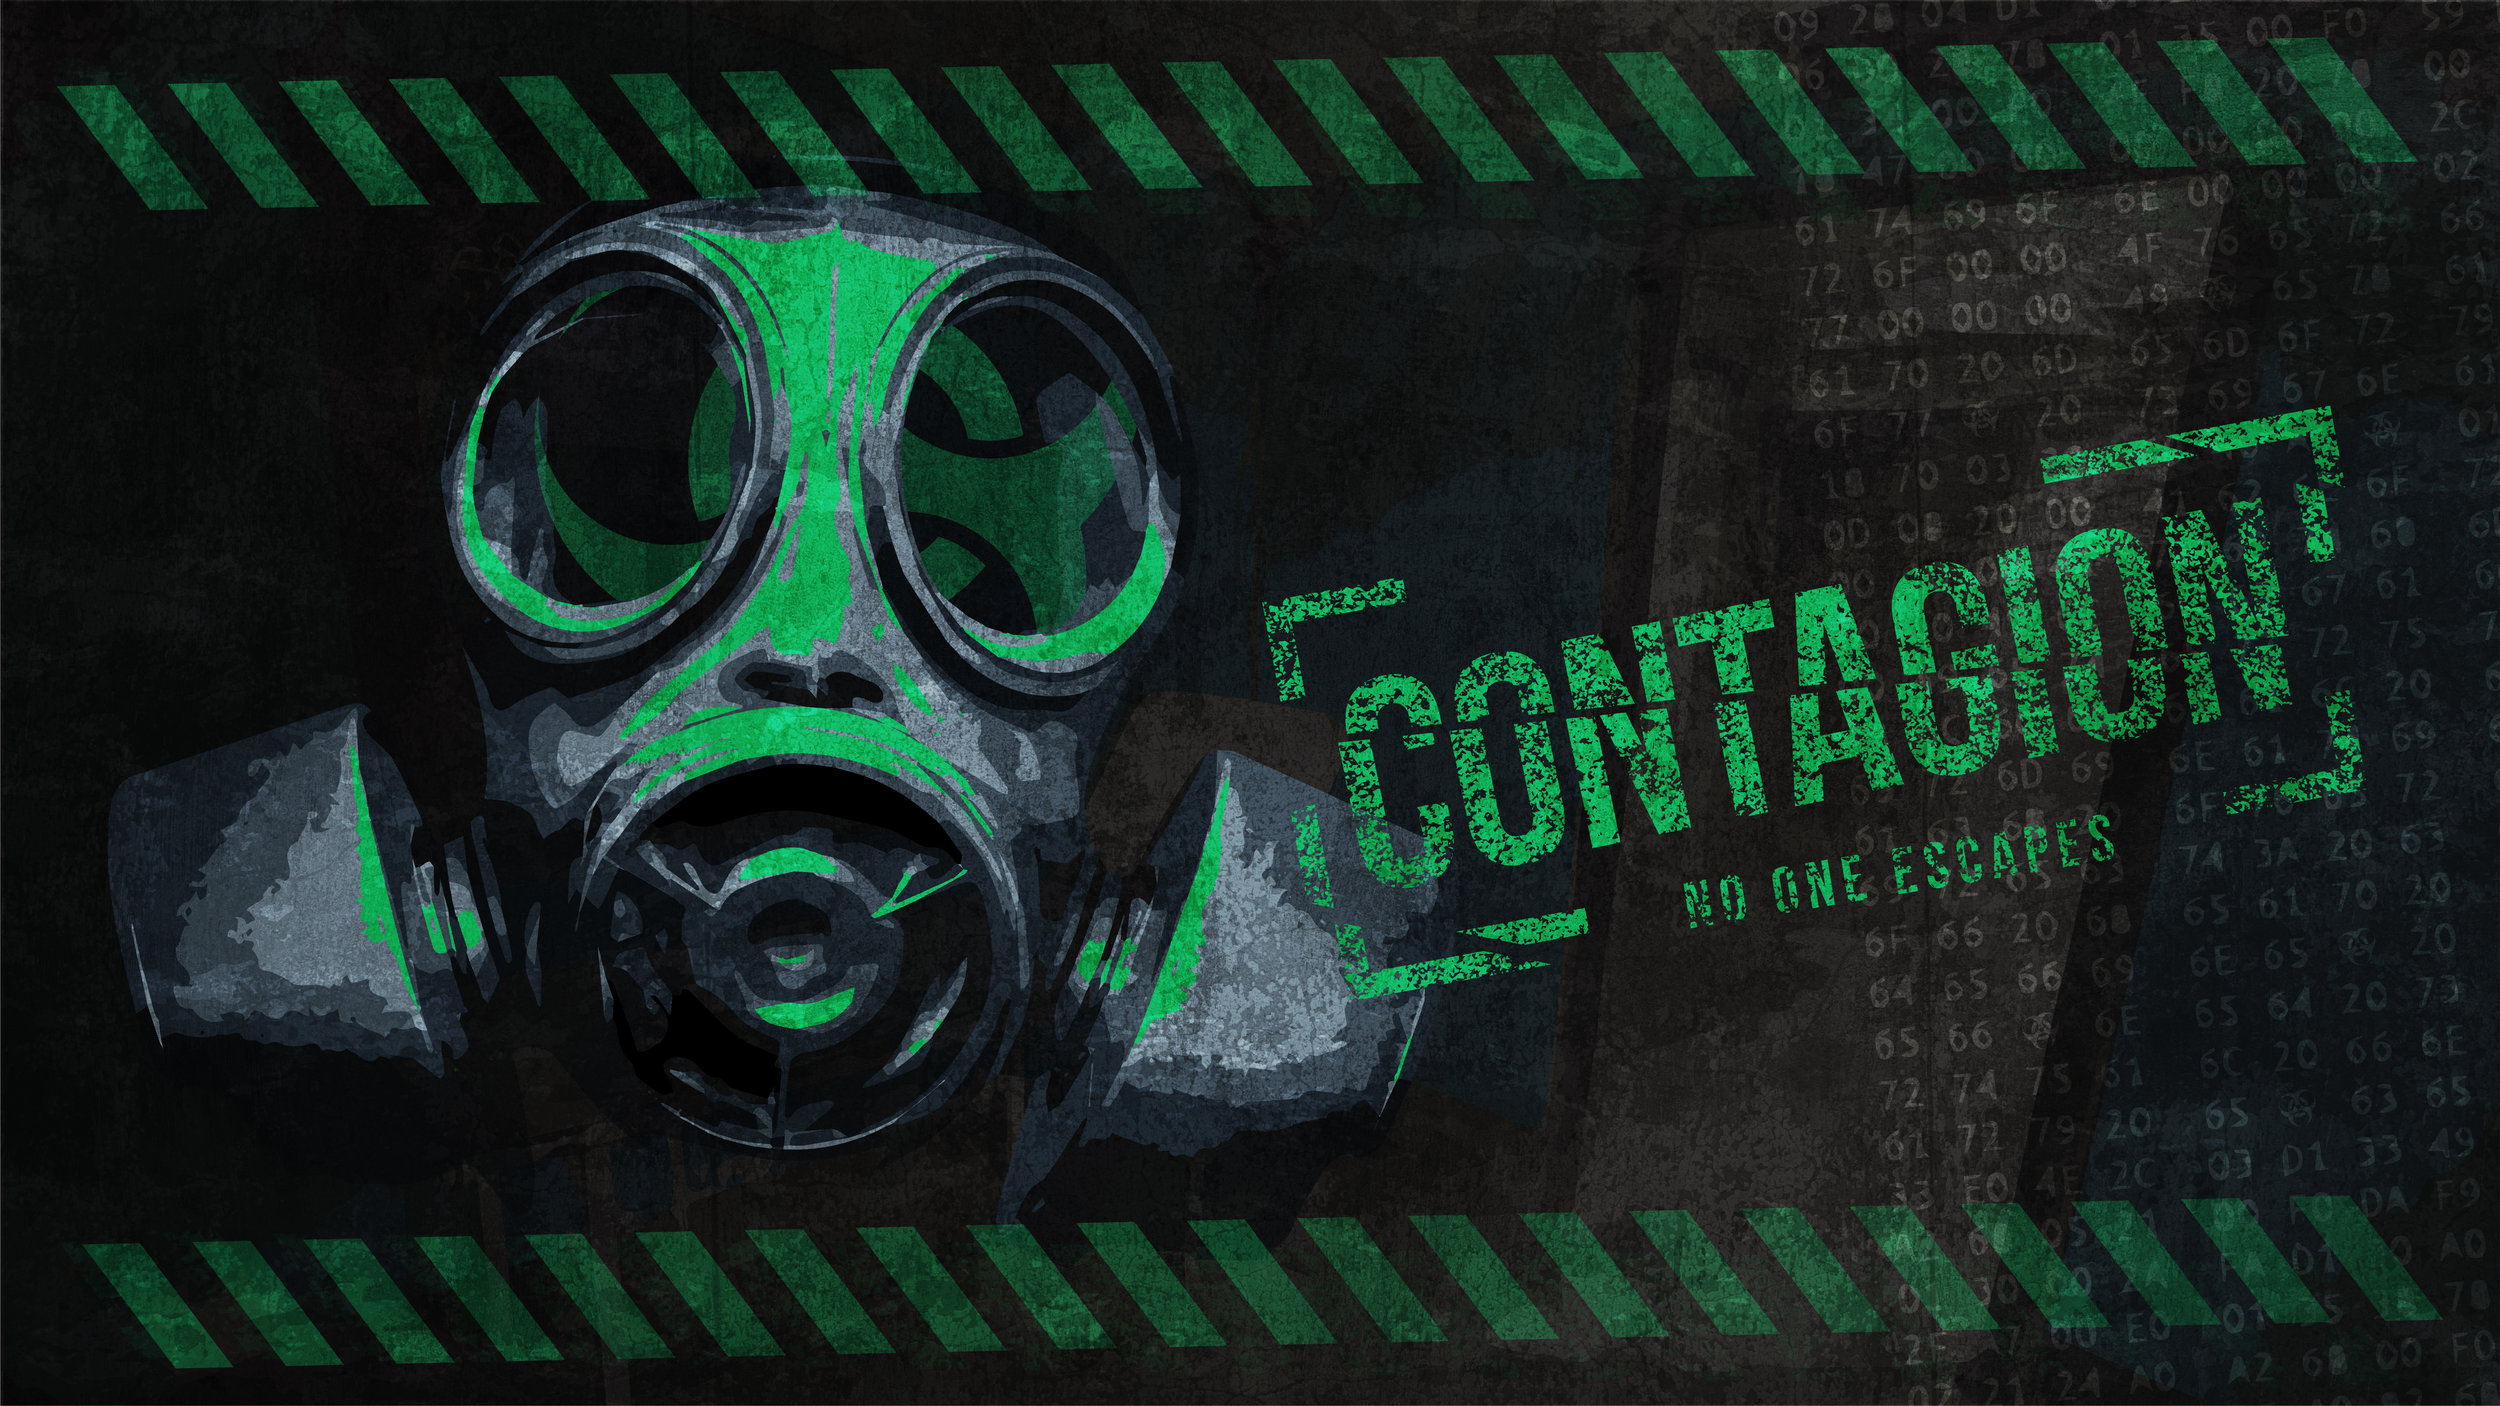 contagion - You've been infected with a virus. You have two options. Sit around and let it take you or redouble your efforts and retrieve a vaccine from an old medical facility.This is not your only problem. After retrieving the vaccine you must find a way to defeat the lock down on the laboratory. The quarantine timer is set to 60 minutes,